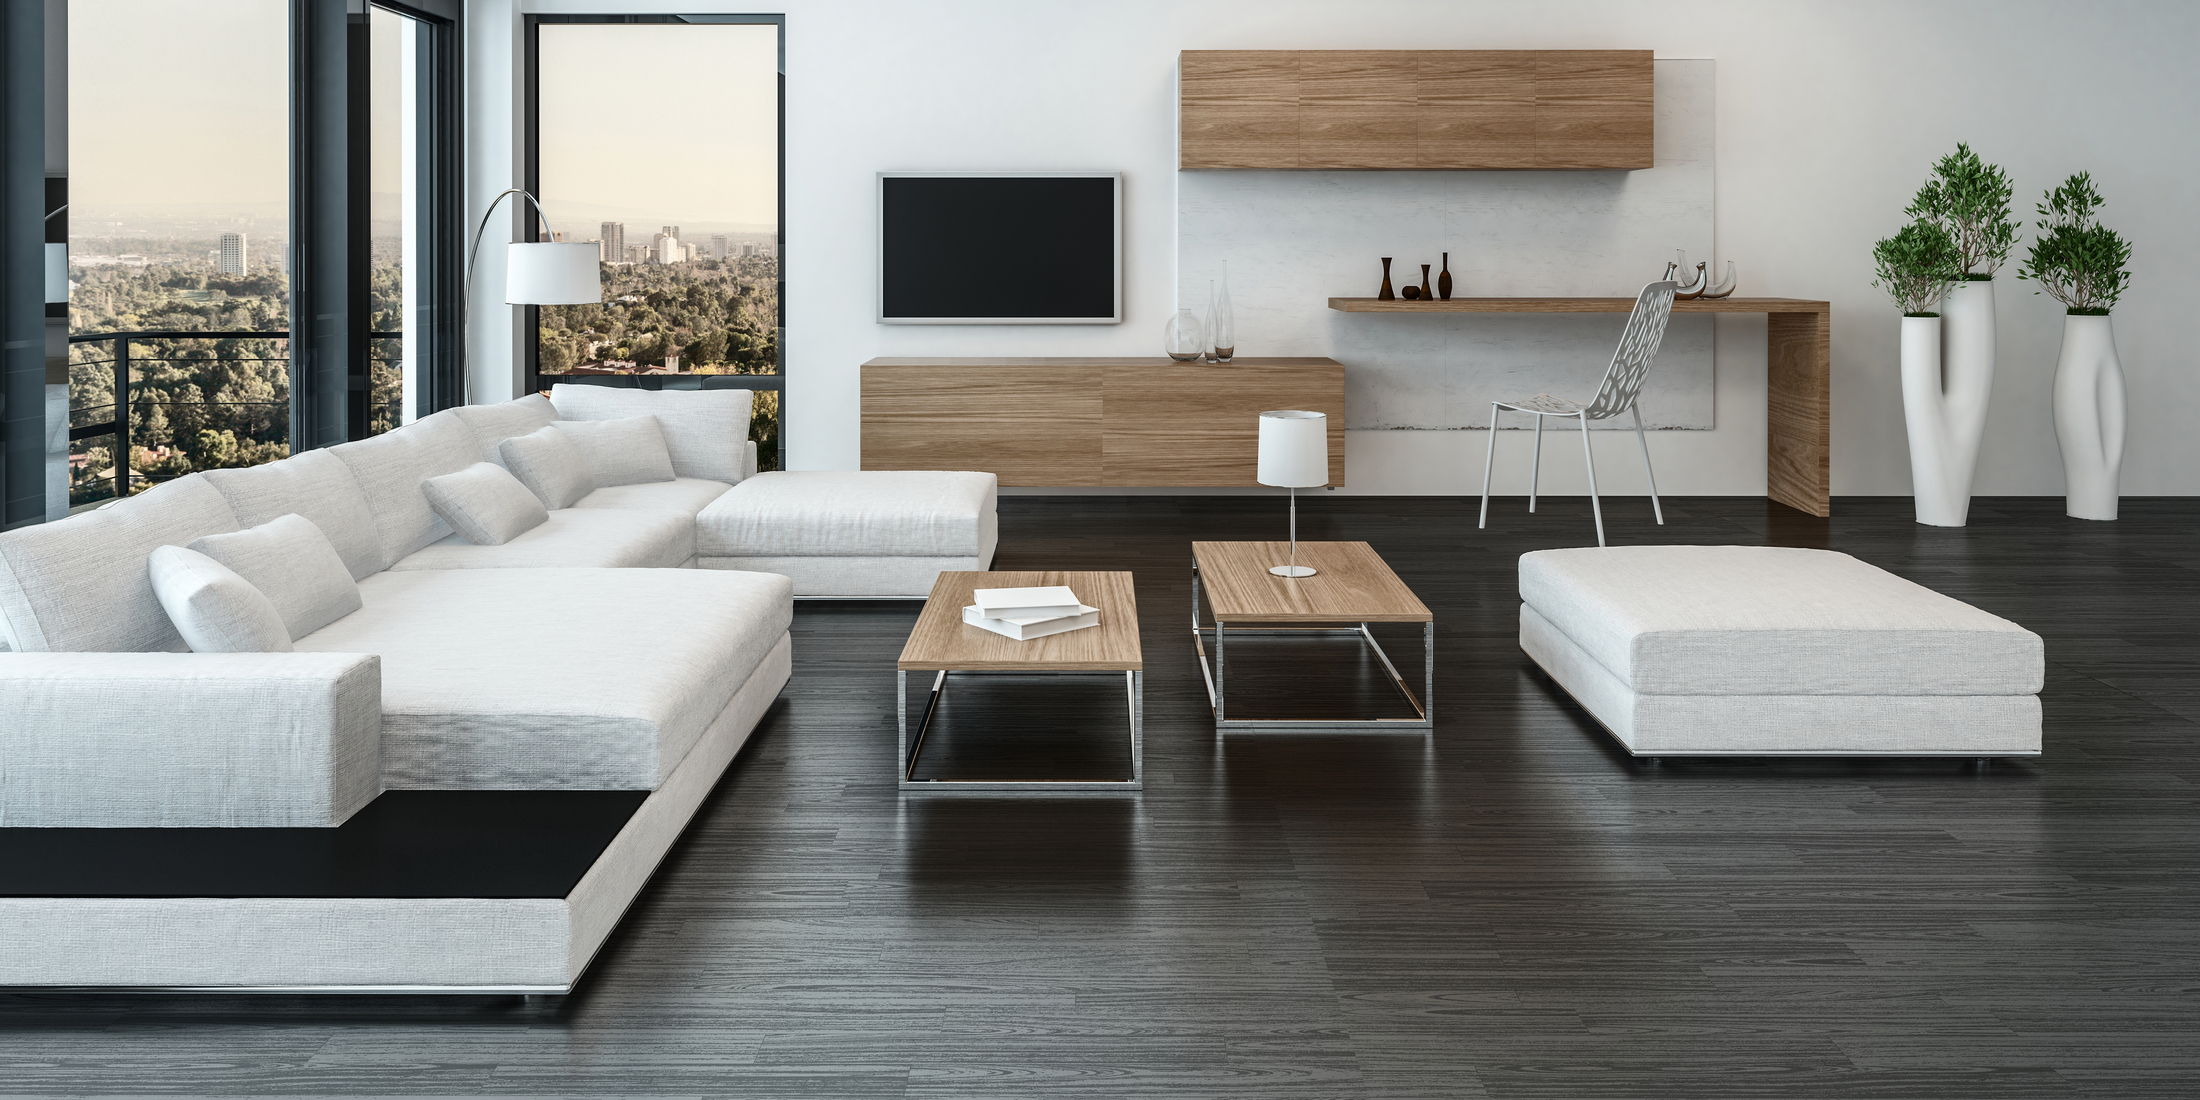 Elegant modern white living room interior with back accents and